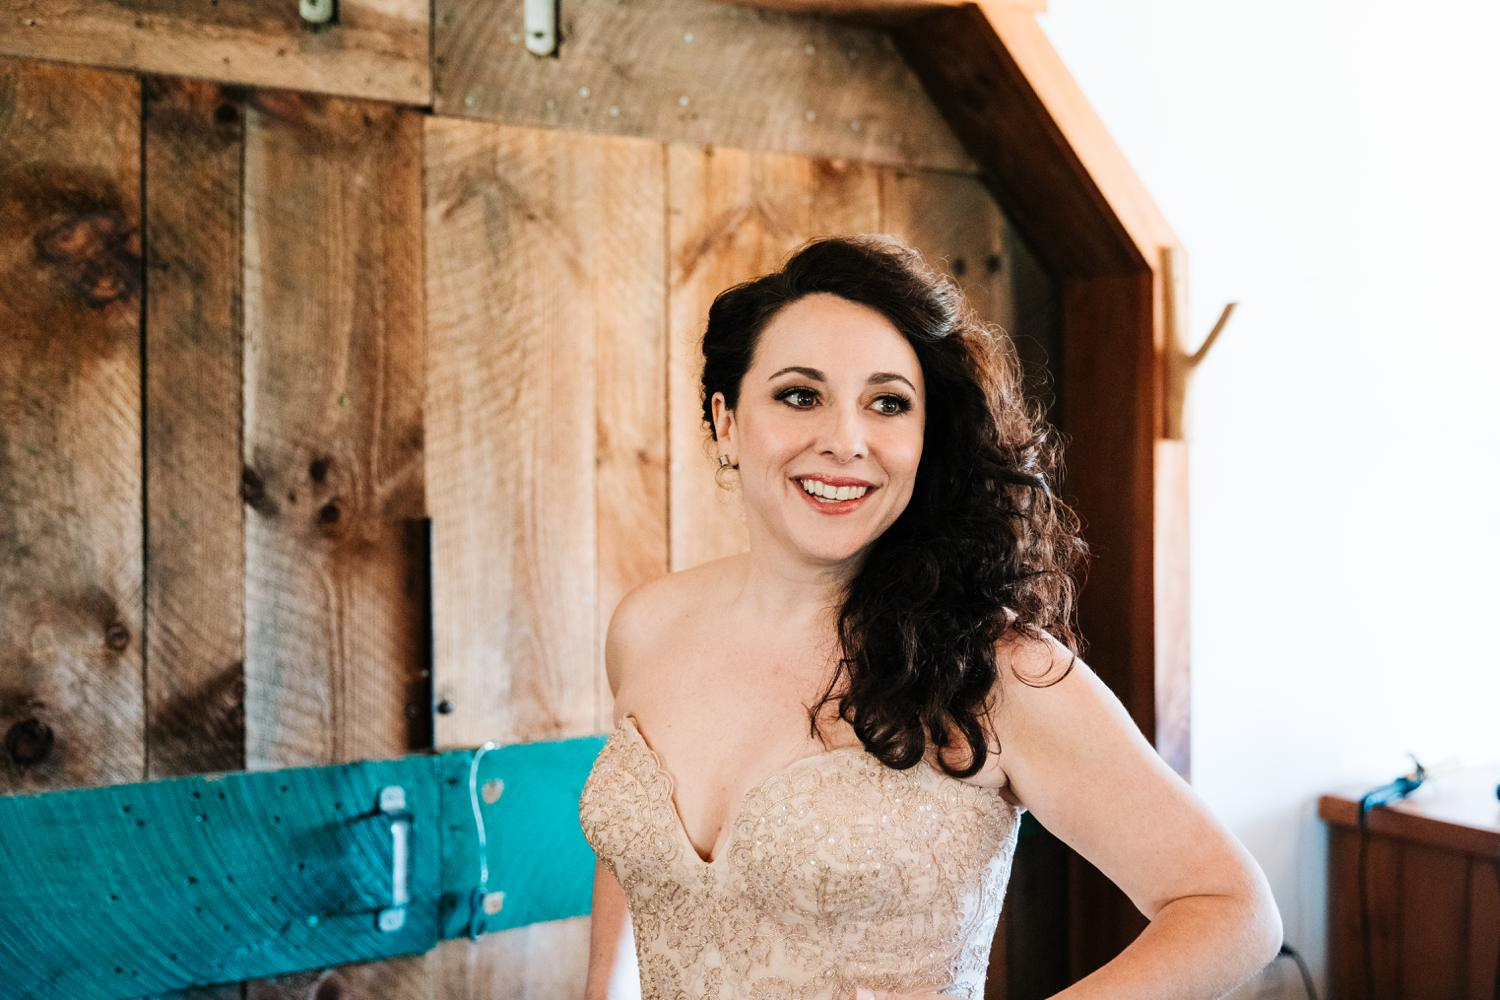 Bride smiling while putting on wedding dress in Santa Fe